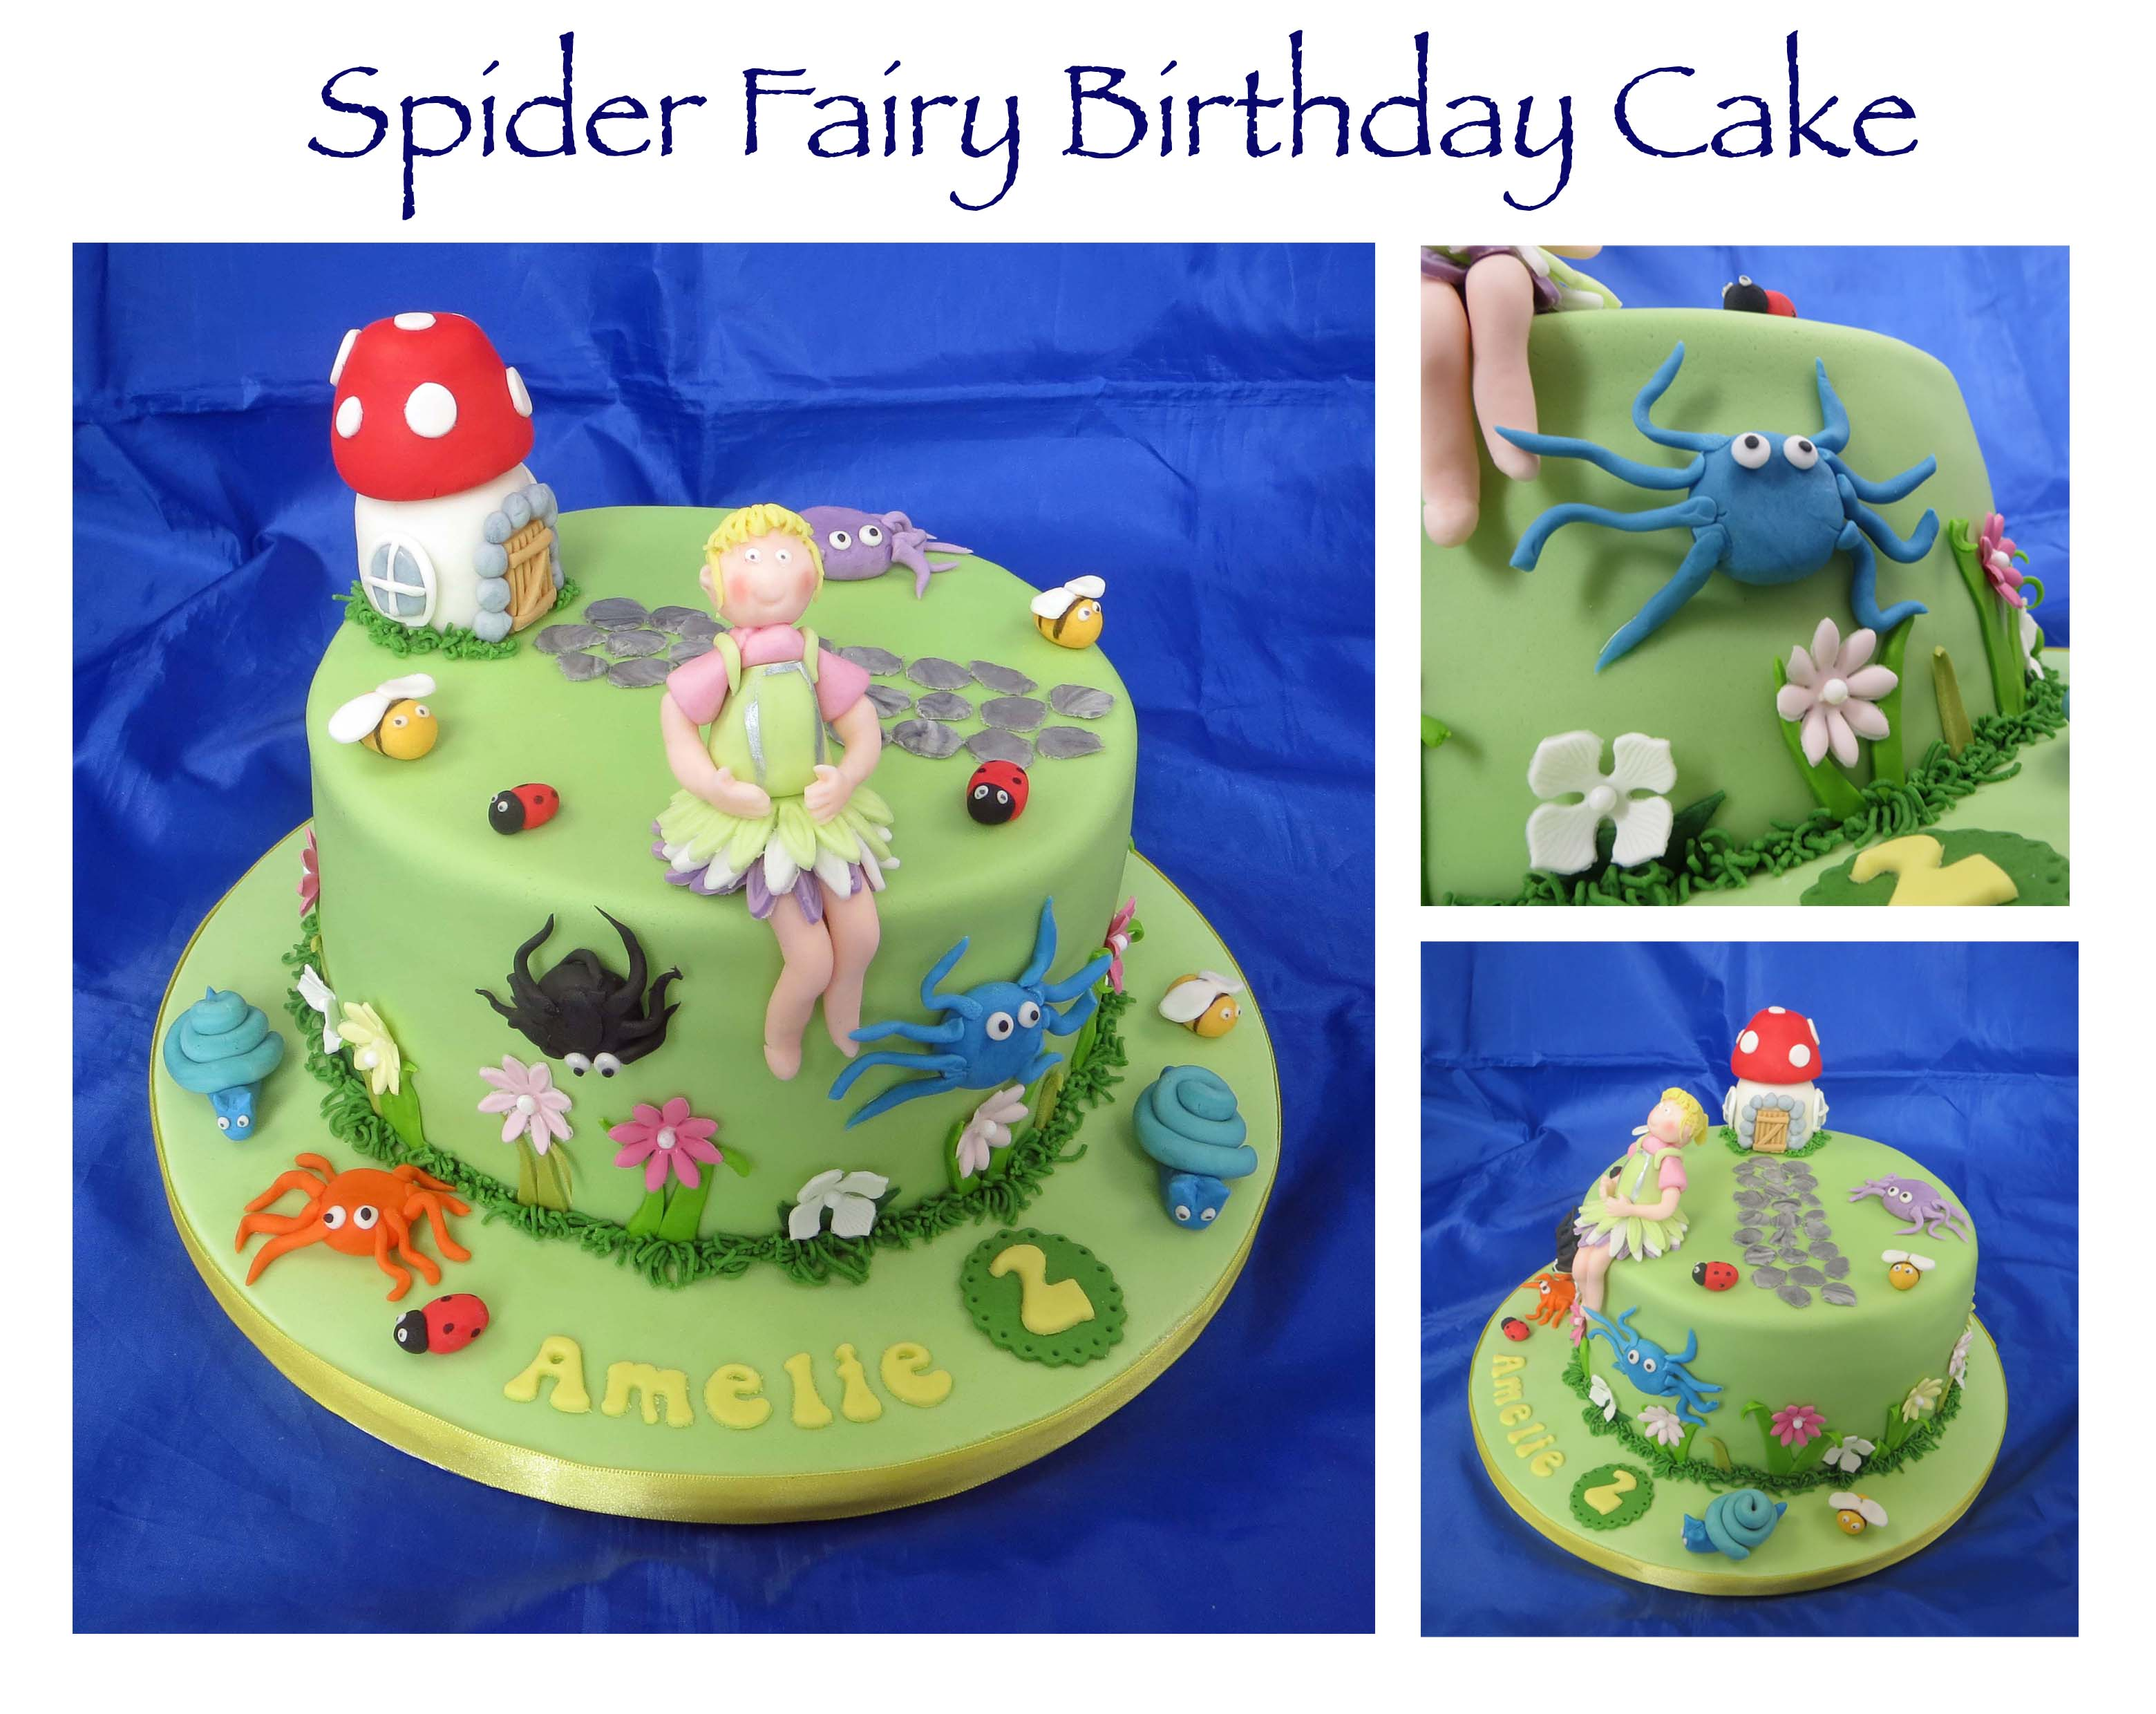 Spider Fairy Birthday Cake